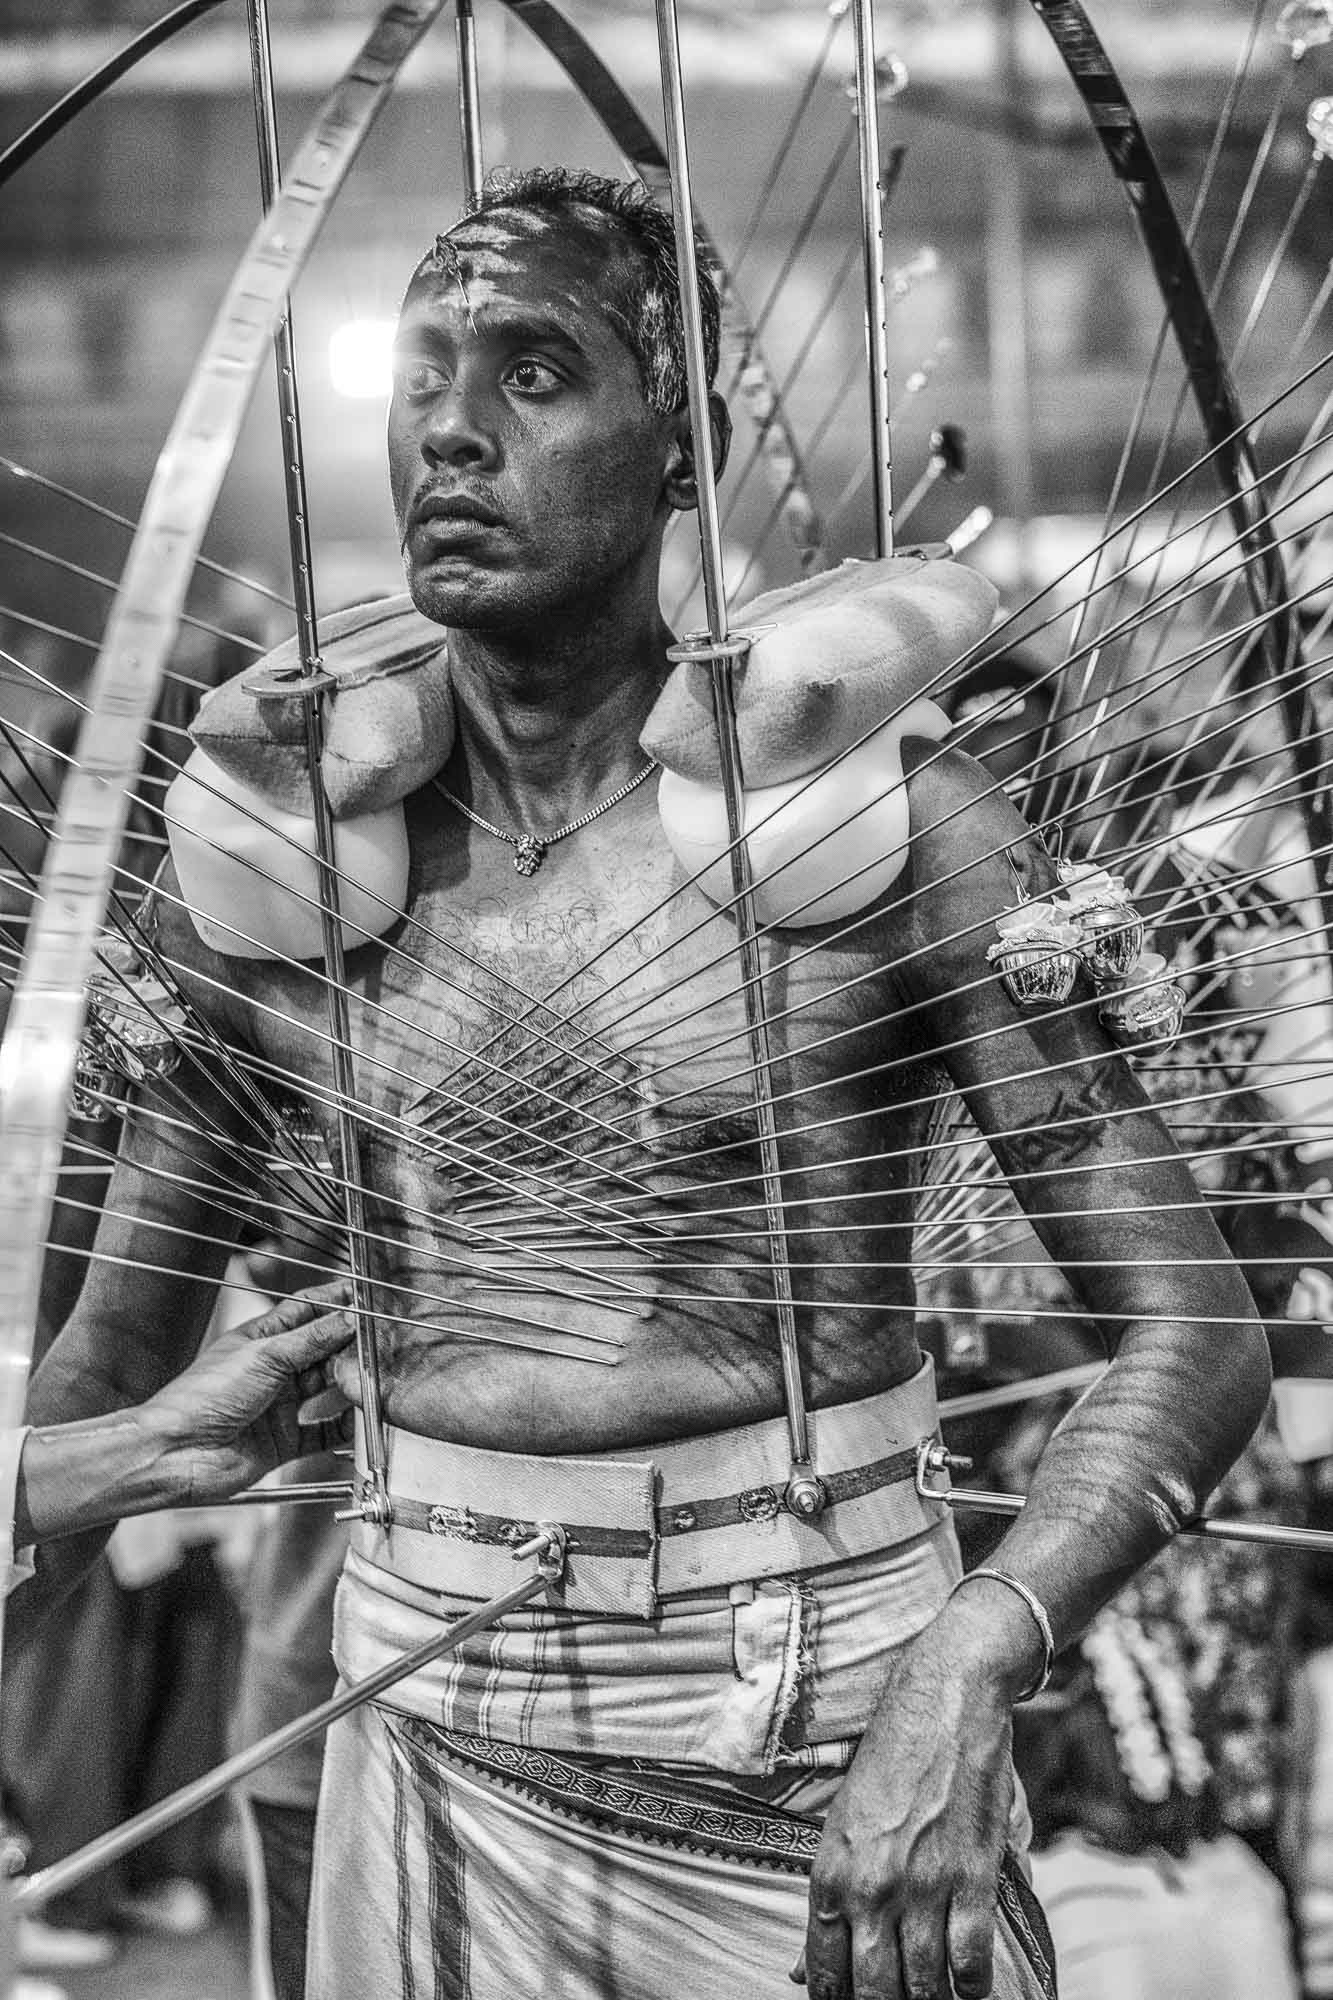 piercing body man temple char Little India Thaipusam Festival hindu Singapore photography jose jeuland documentary event